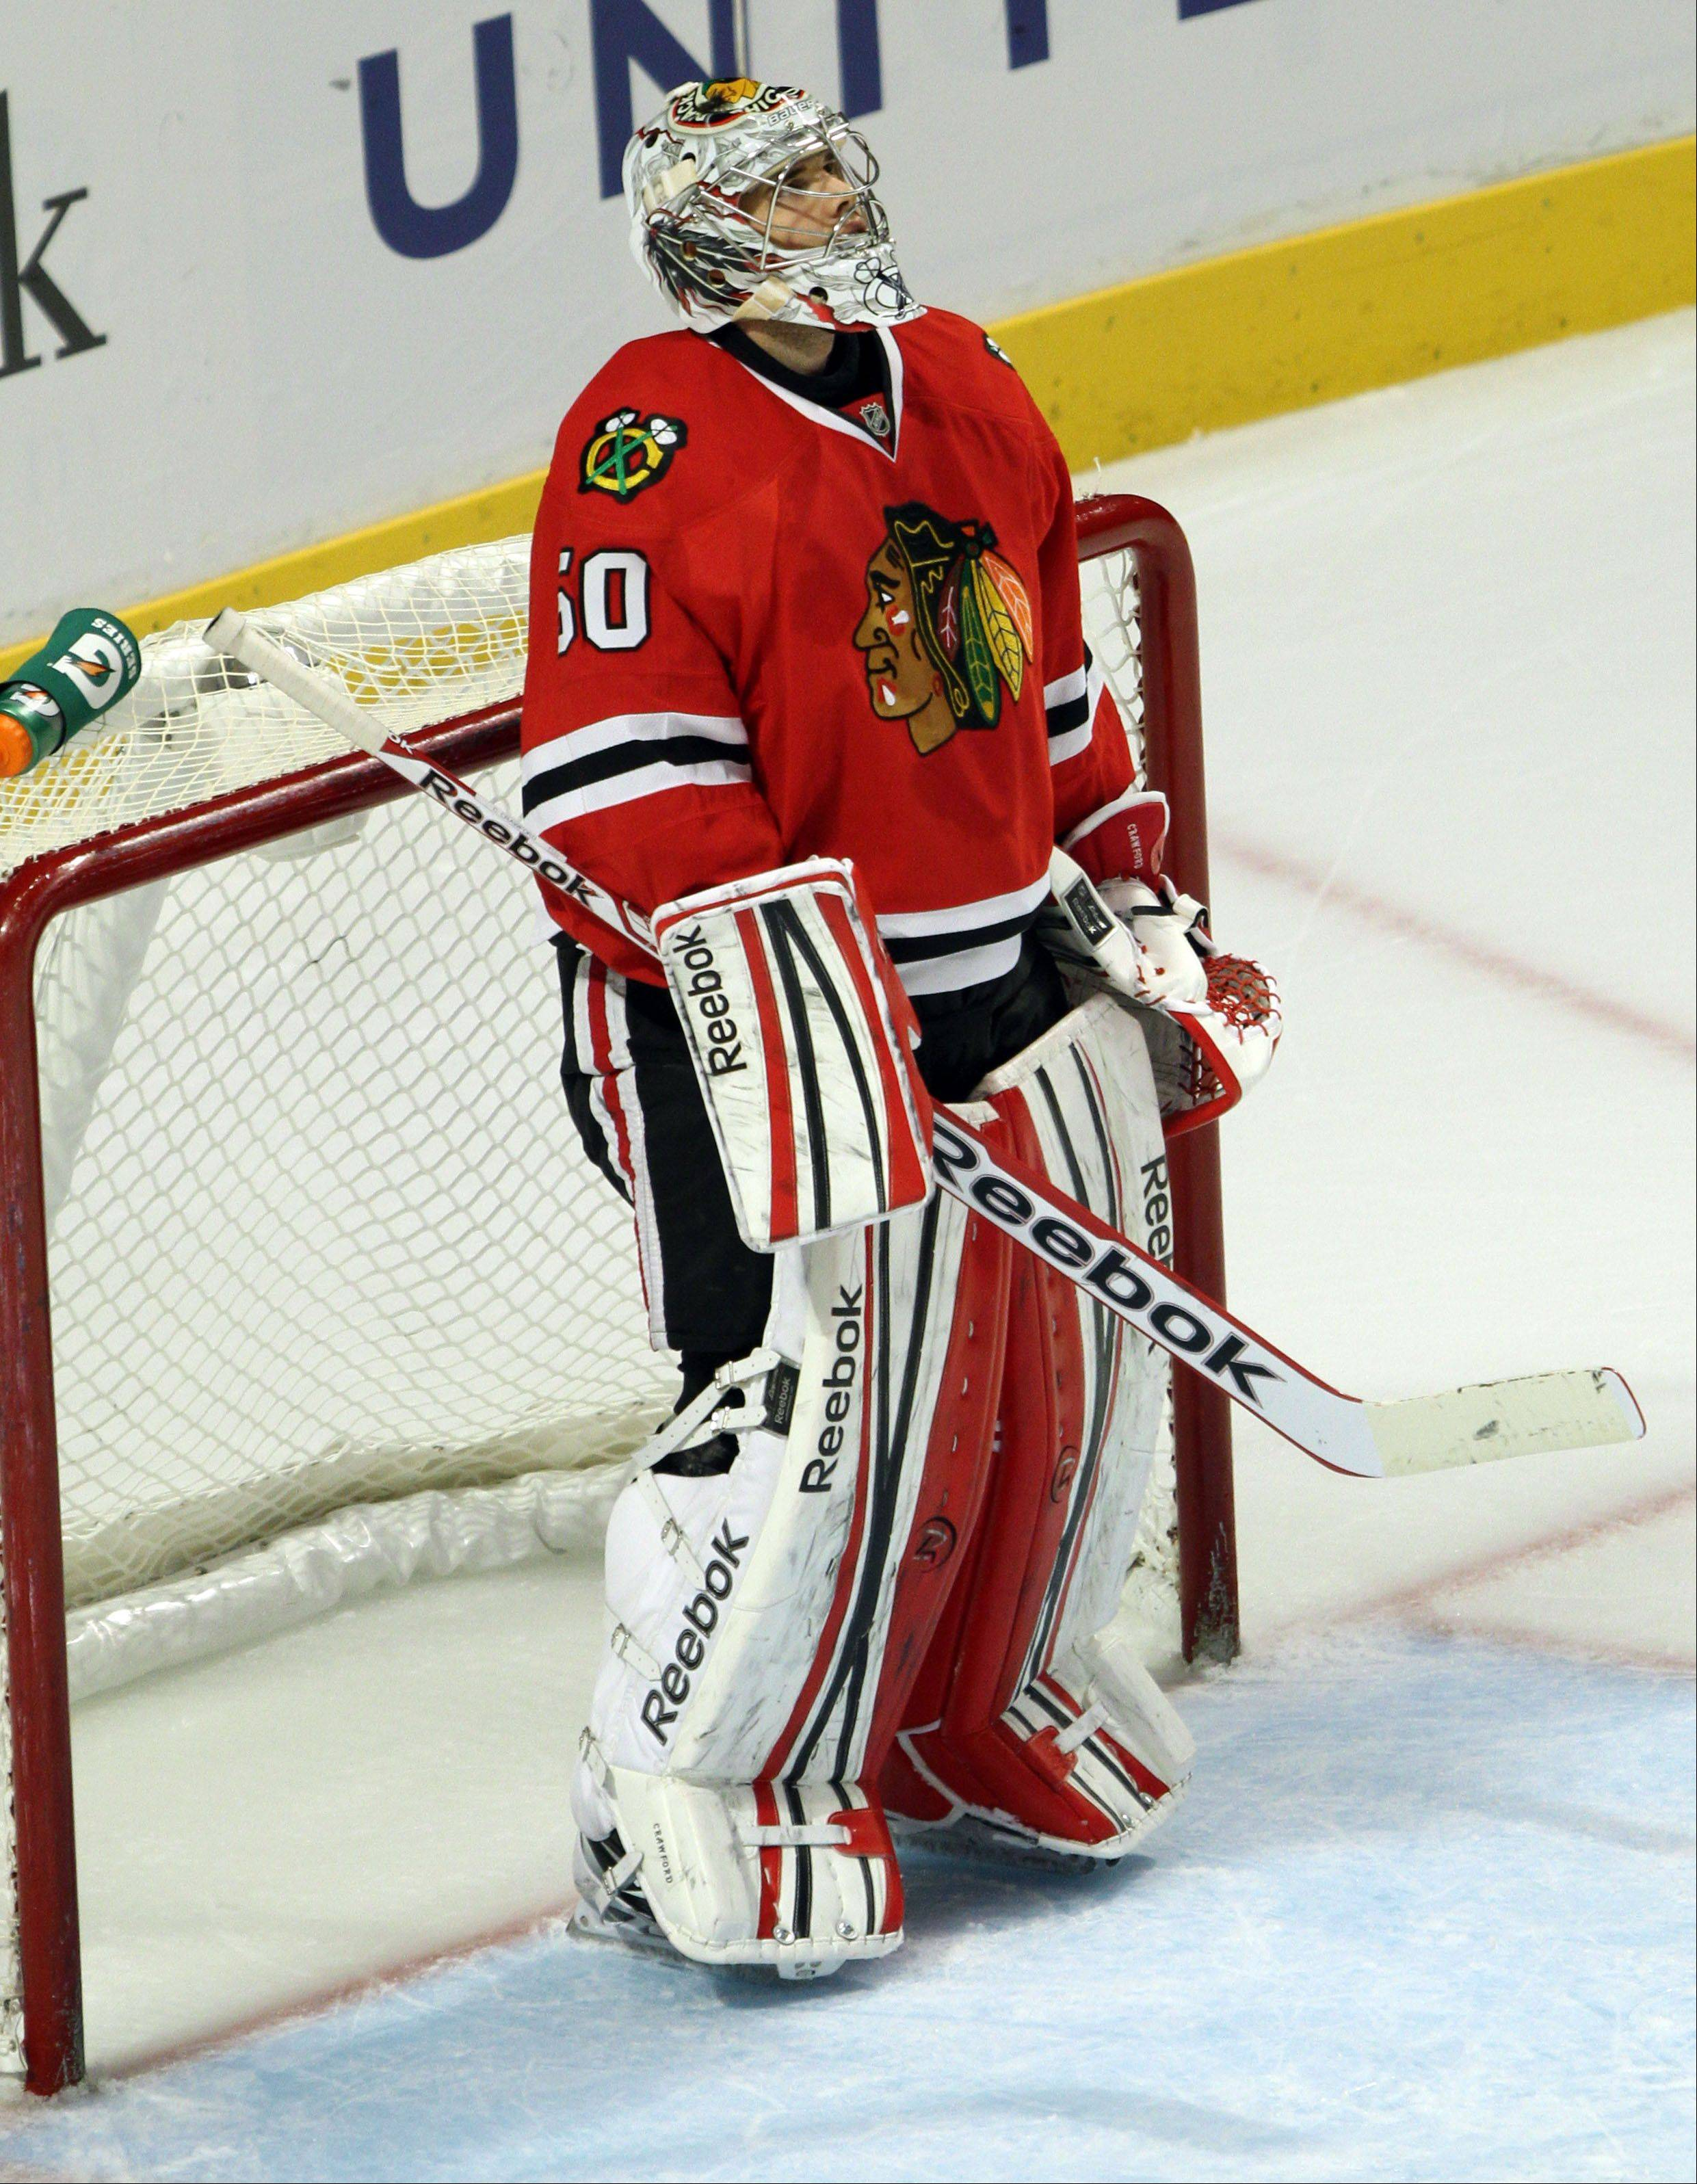 While Blackhawks goalie Corey Crawford put together a record of 19-5-5 in the regular season, he knows the playoffs pose a much bigger challenge.